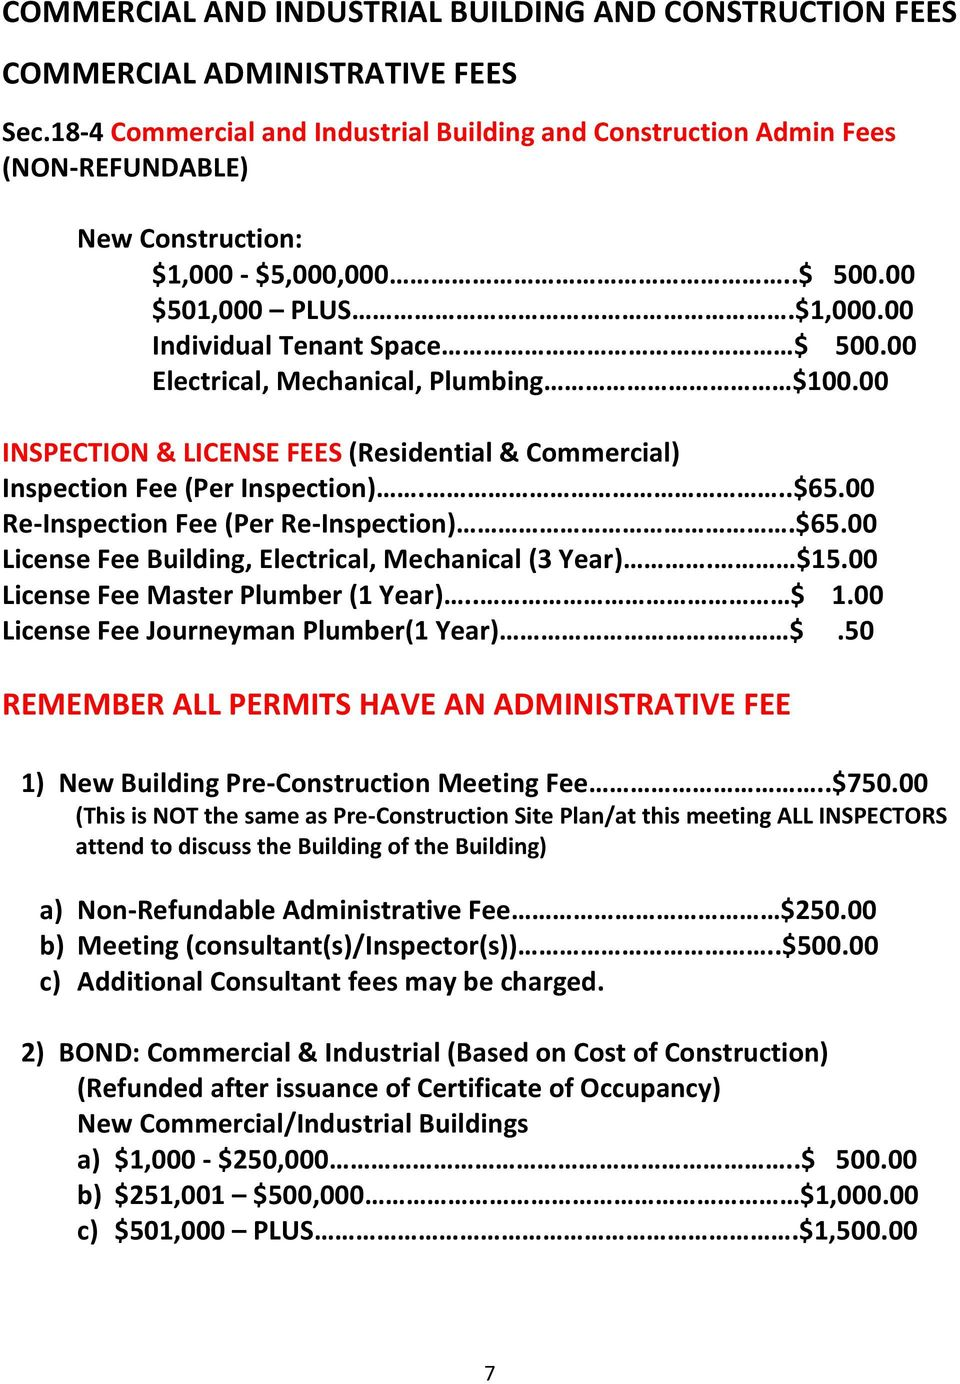 00 Electrical, Mechanical, Plumbing $100.00 INSPECTION & LICENSE FEES (Residential & Commercial) Inspection Fee (Per Inspection)...$65.00 Re-Inspection Fee (Per Re-Inspection).$65.00 License Fee Building, Electrical, Mechanical (3 Year).